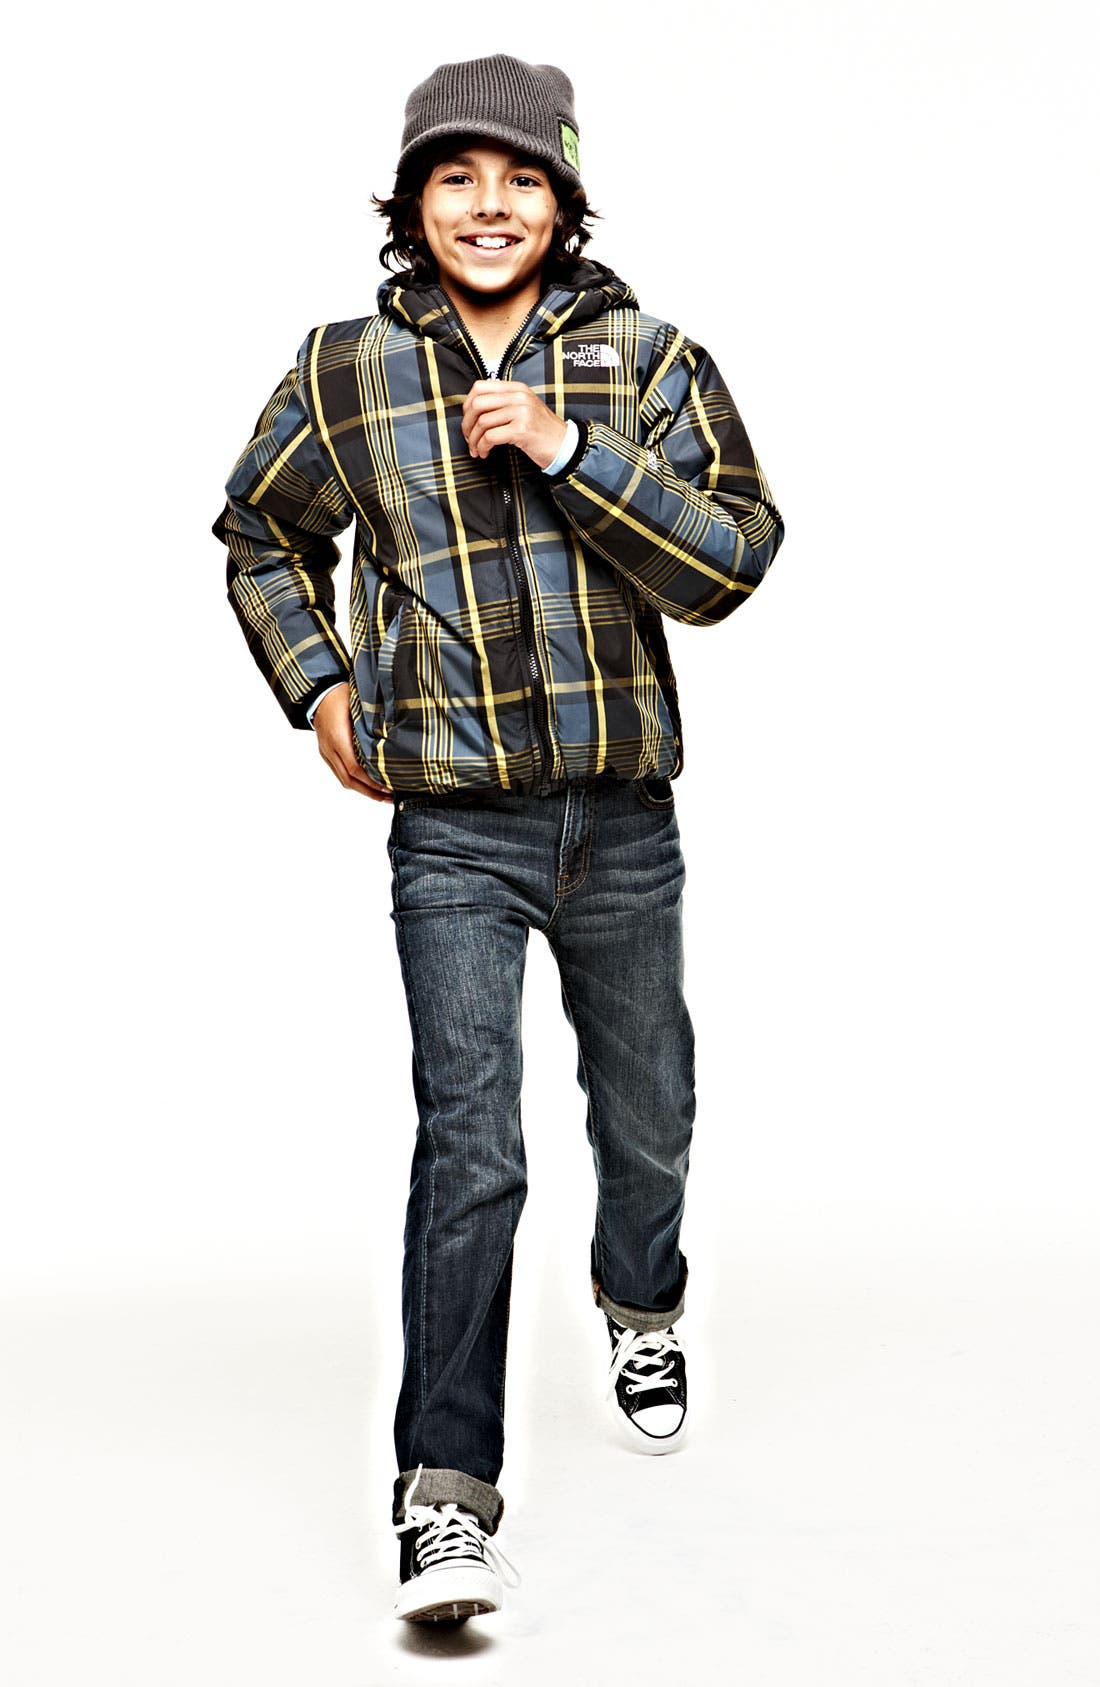 Alternate Image 1 Selected - Tucker + Tate Thermal T-Shirt, The North Face Down Jacket & Joe's Jeans (Big Boys)